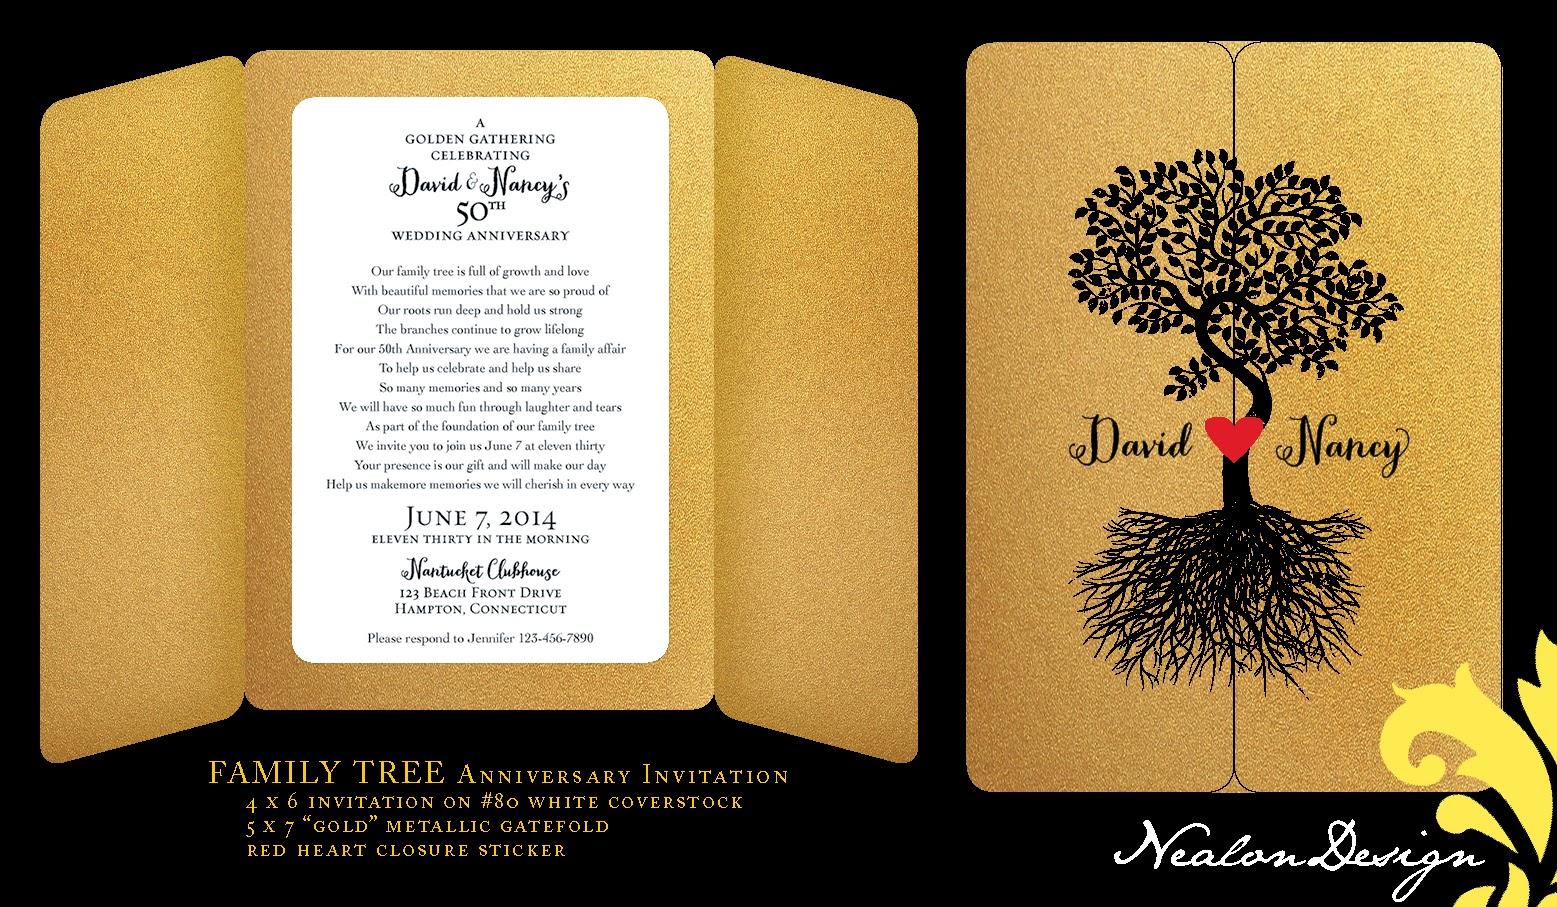 Nealon design family tree anniversary invitation family tree anniversary invitation stopboris Images